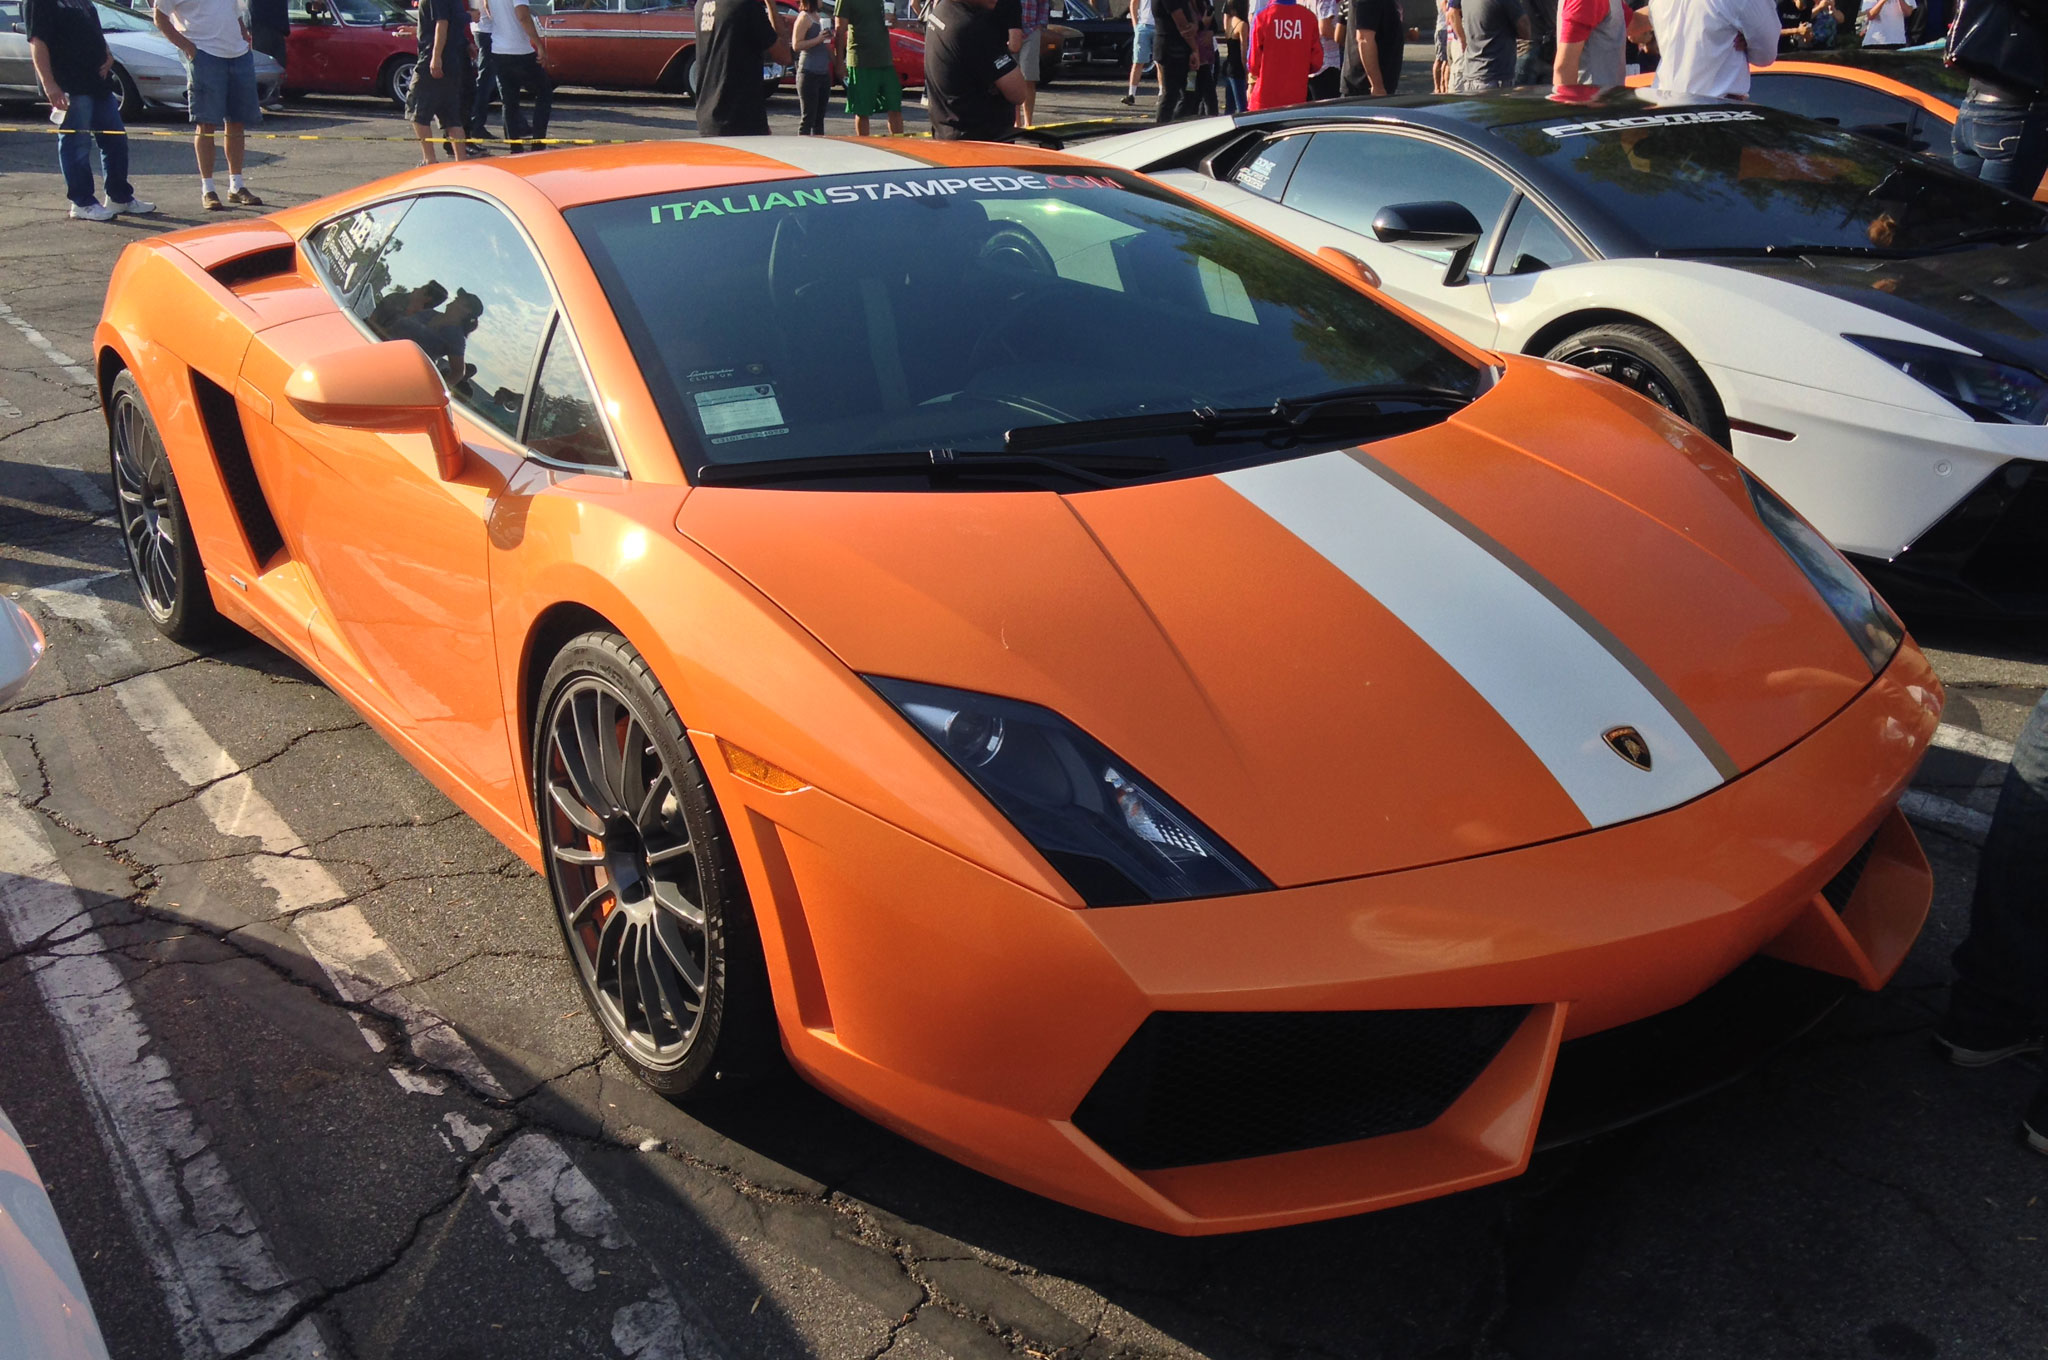 And this Gallardo proves that orange is even better with a racing stripe.